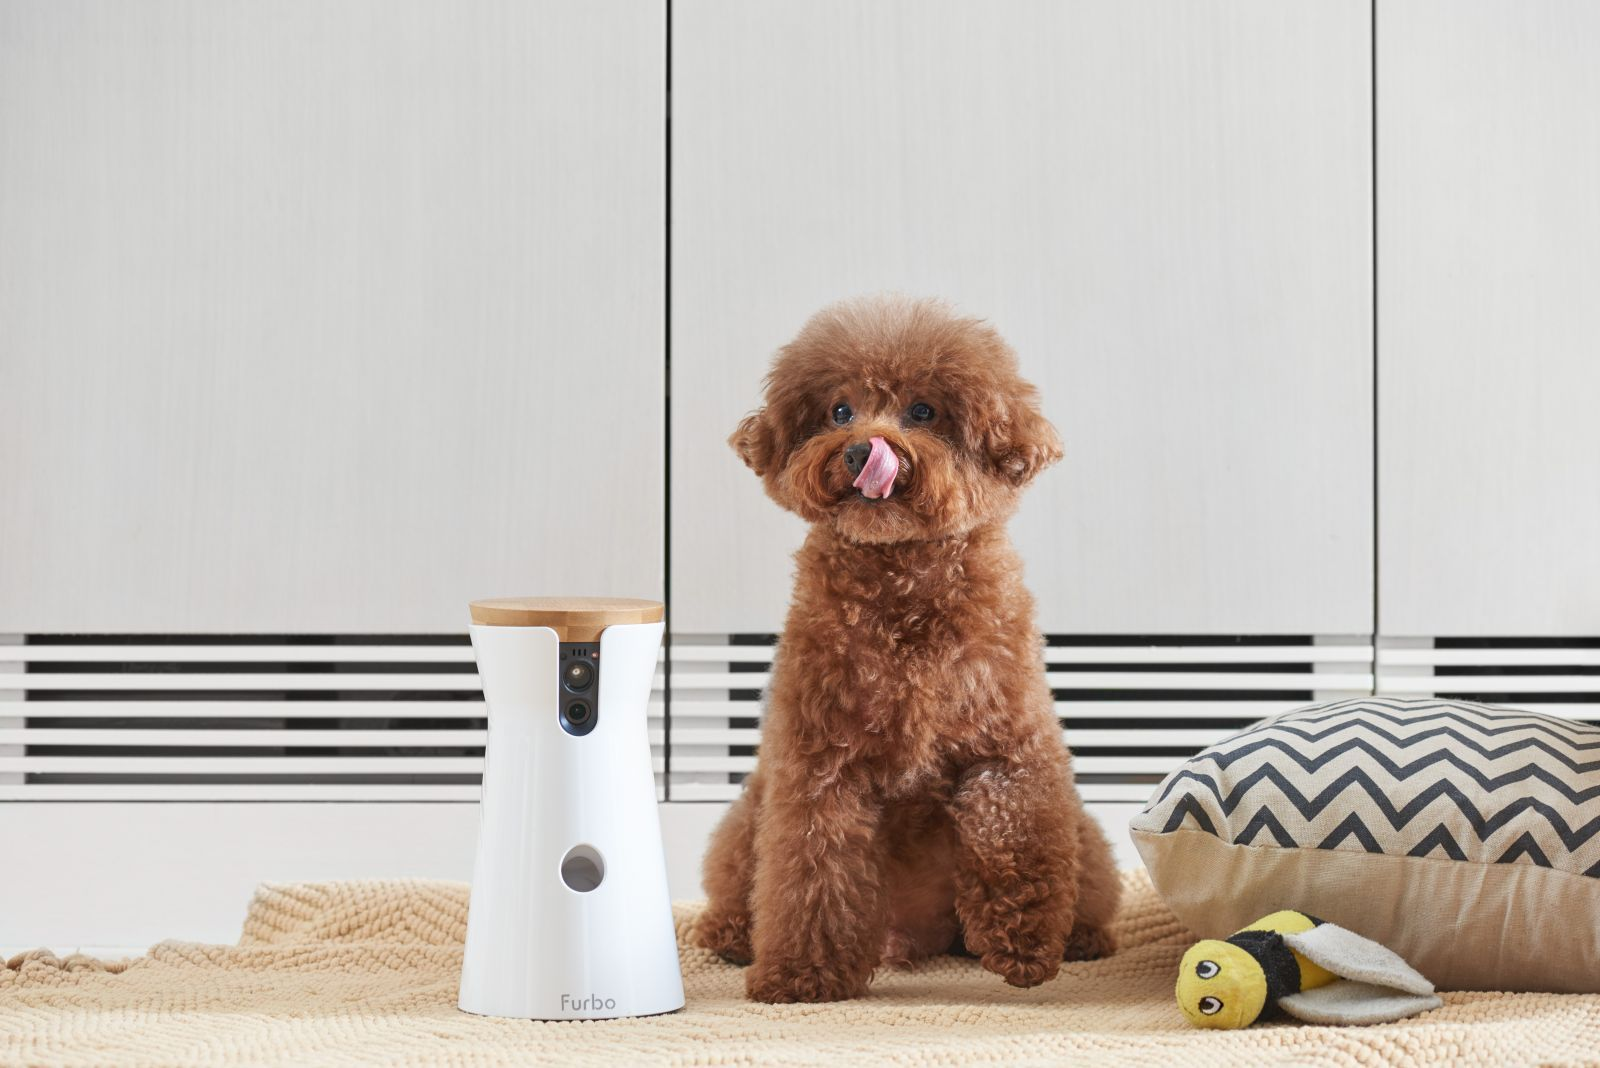 Pet Tech: 5 Clever Gadgets For Your Furry Friend